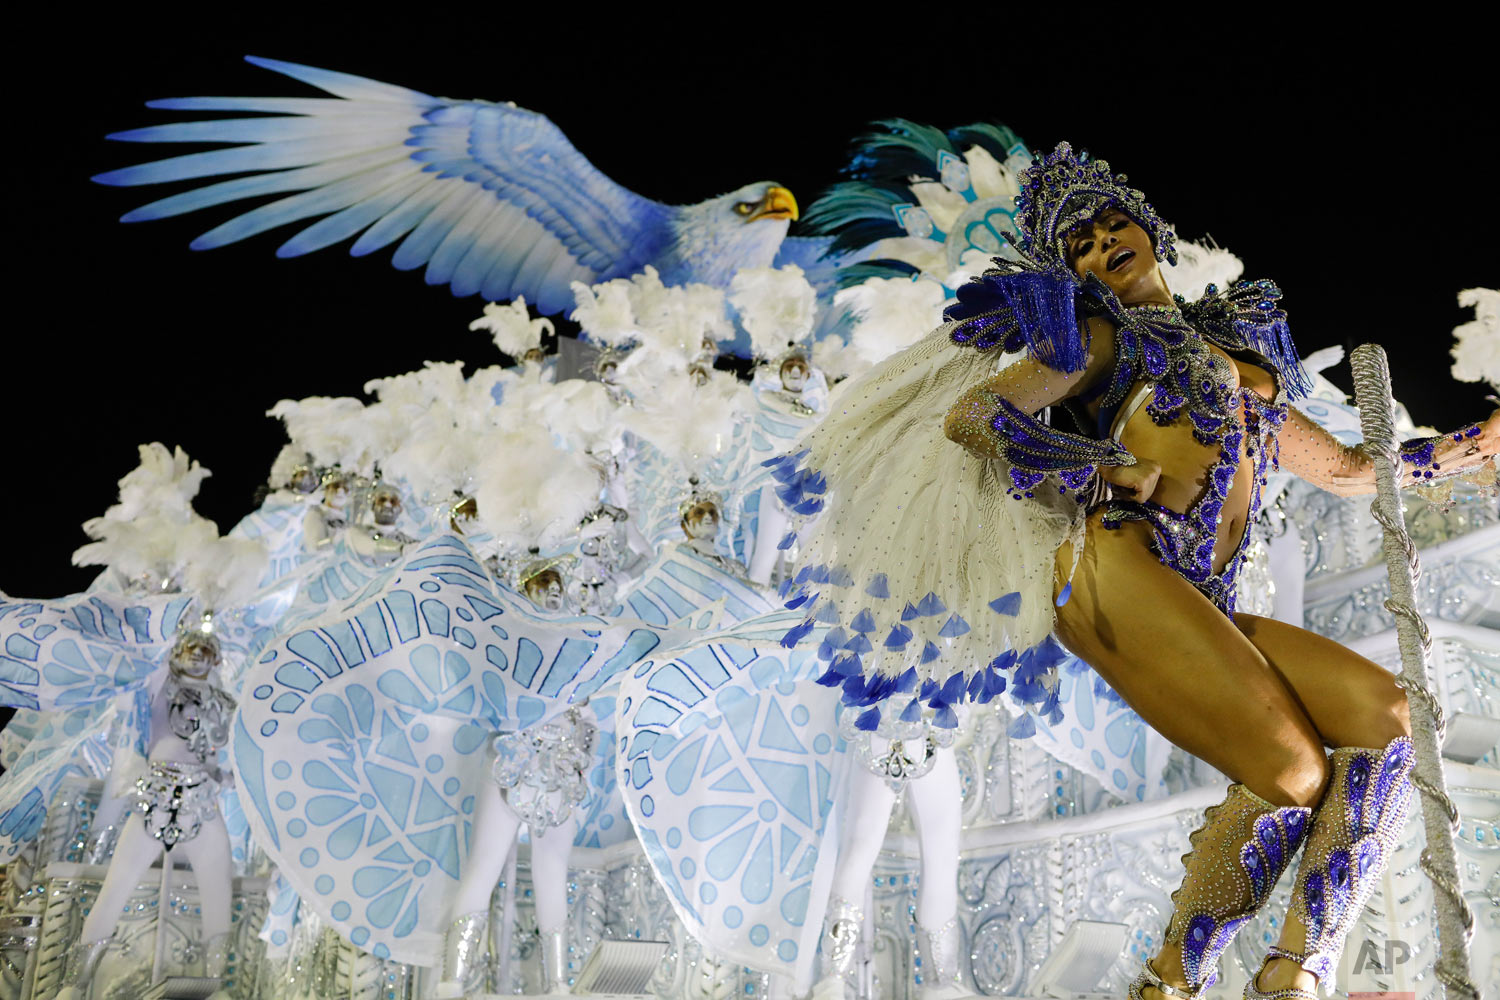 A performer from the Portela samba school parades on a float during Carnival celebrations at the Sambadrome in Rio de Janeiro, Brazil, Monday, Feb. 12, 2018. (AP Photo/Leo Correa)